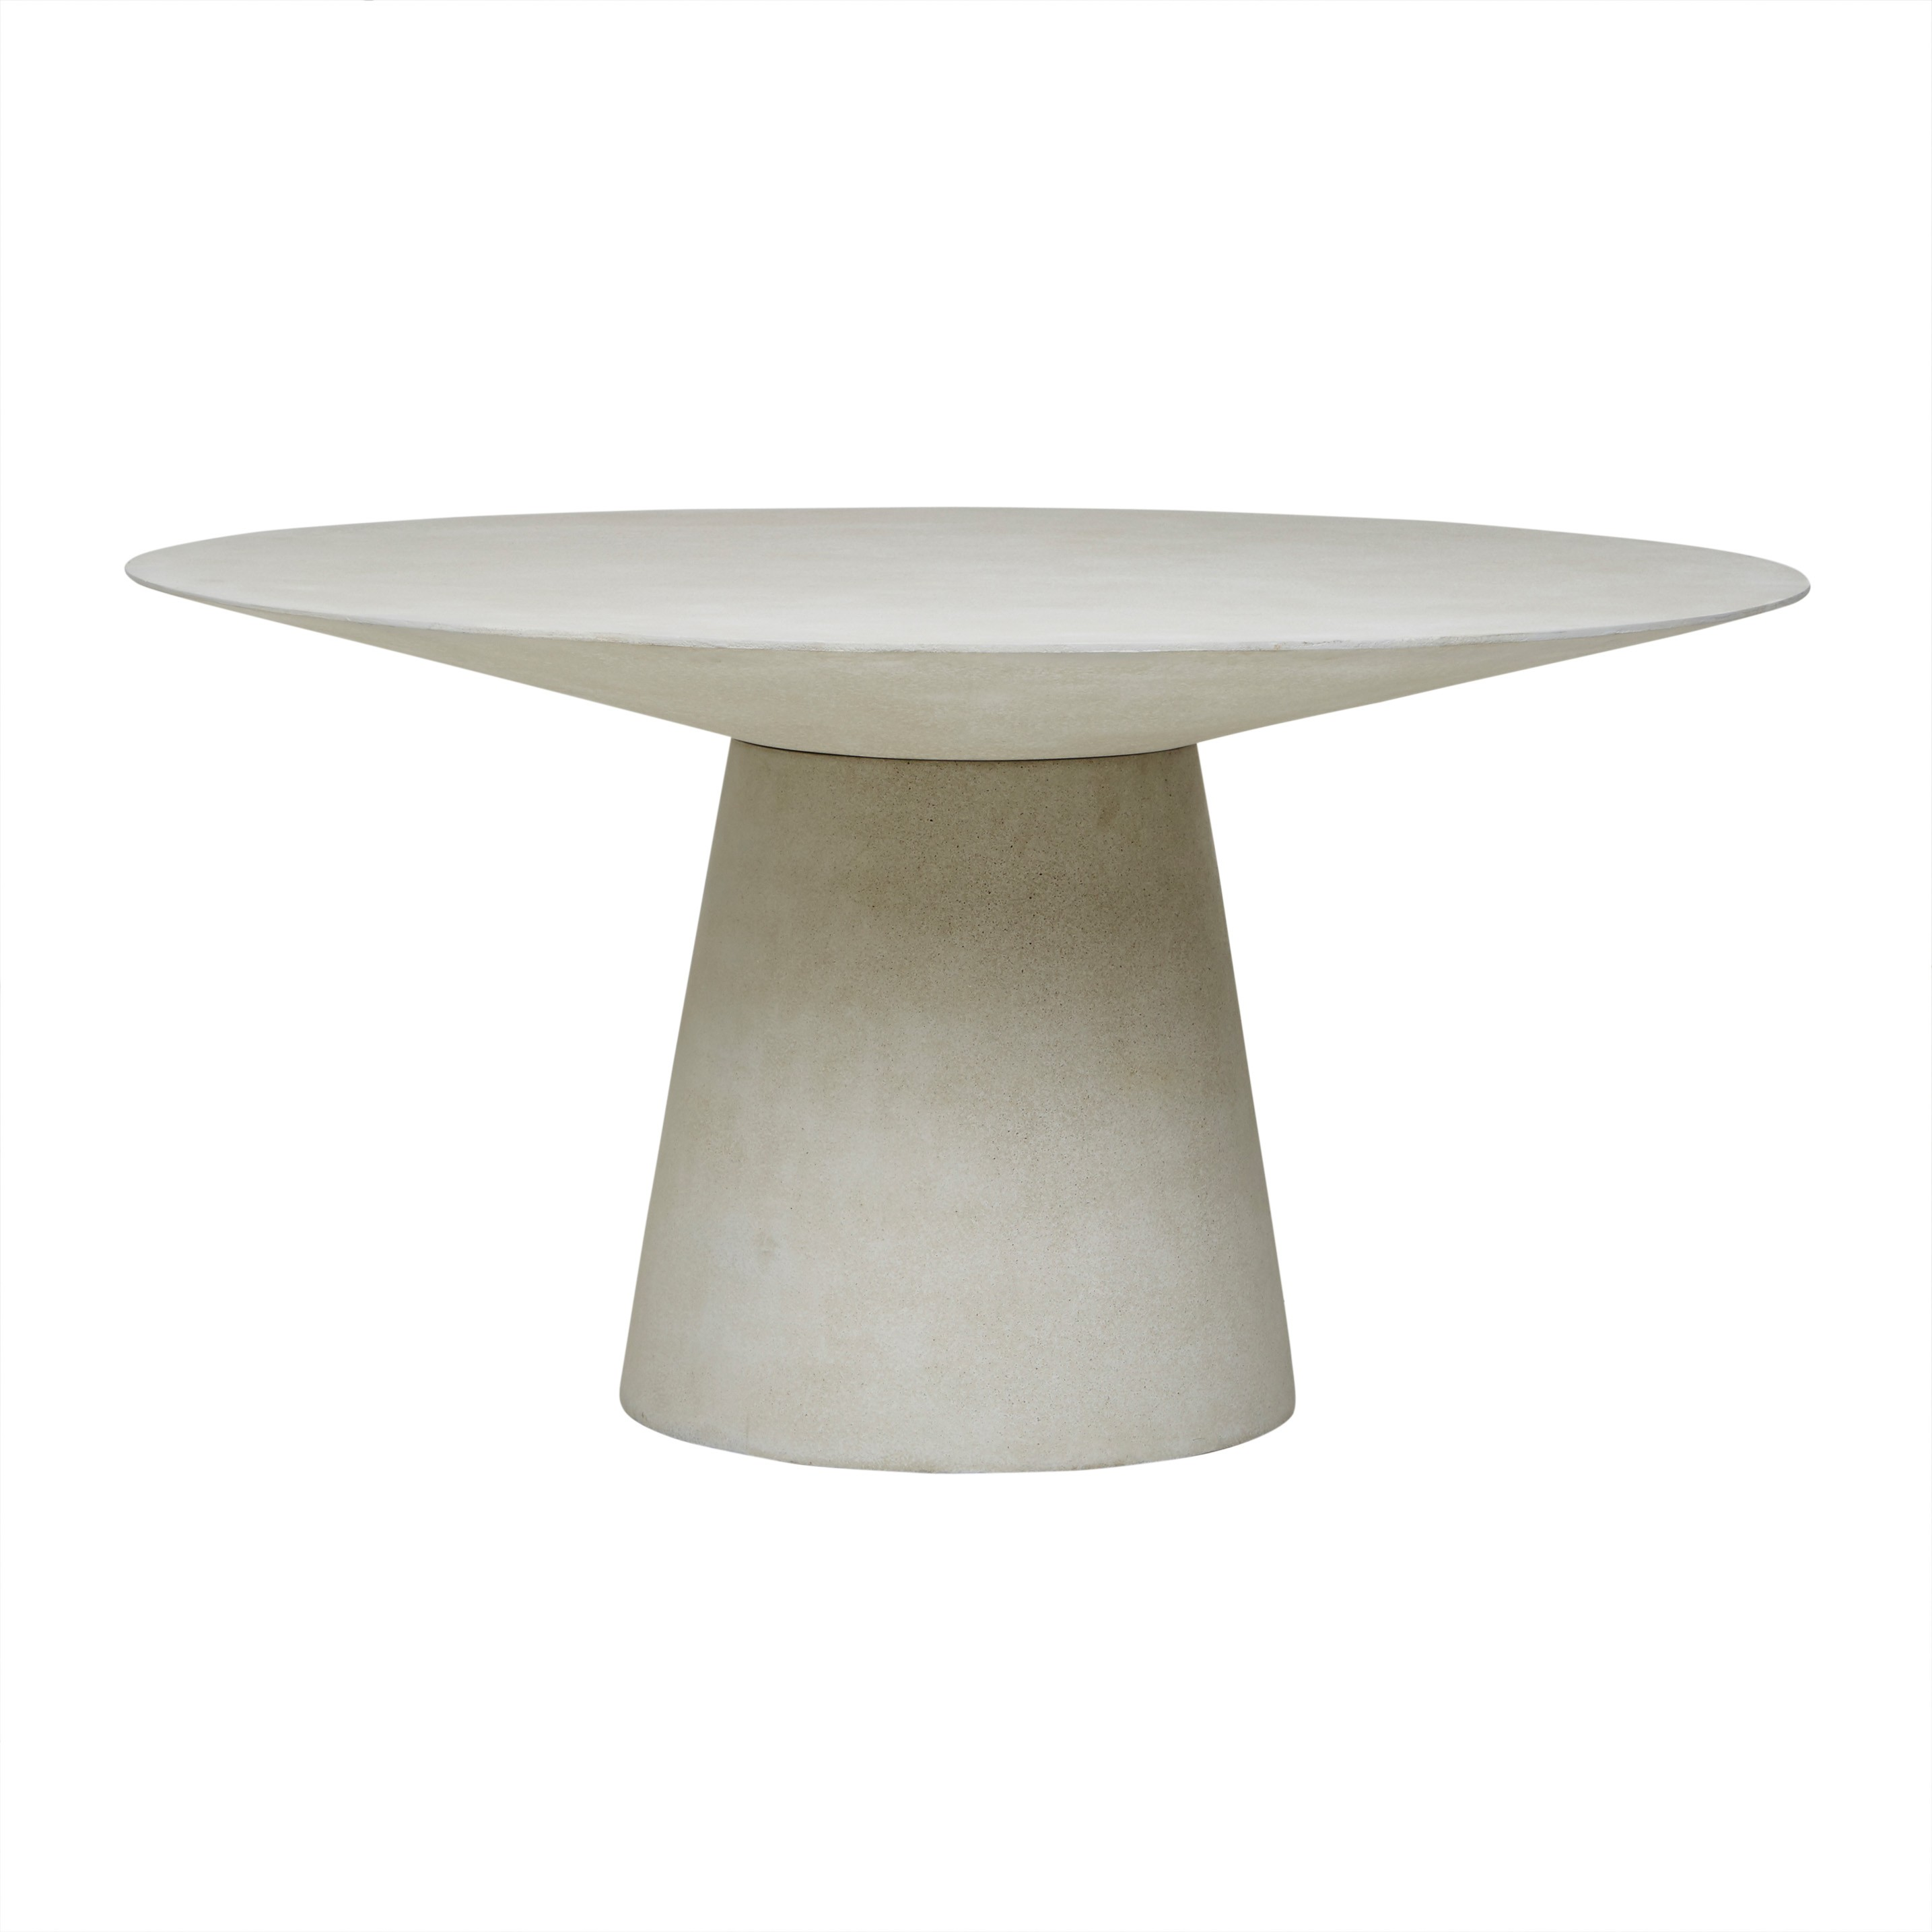 Furniture Hero-Images Dining-Tables livorno-round-01